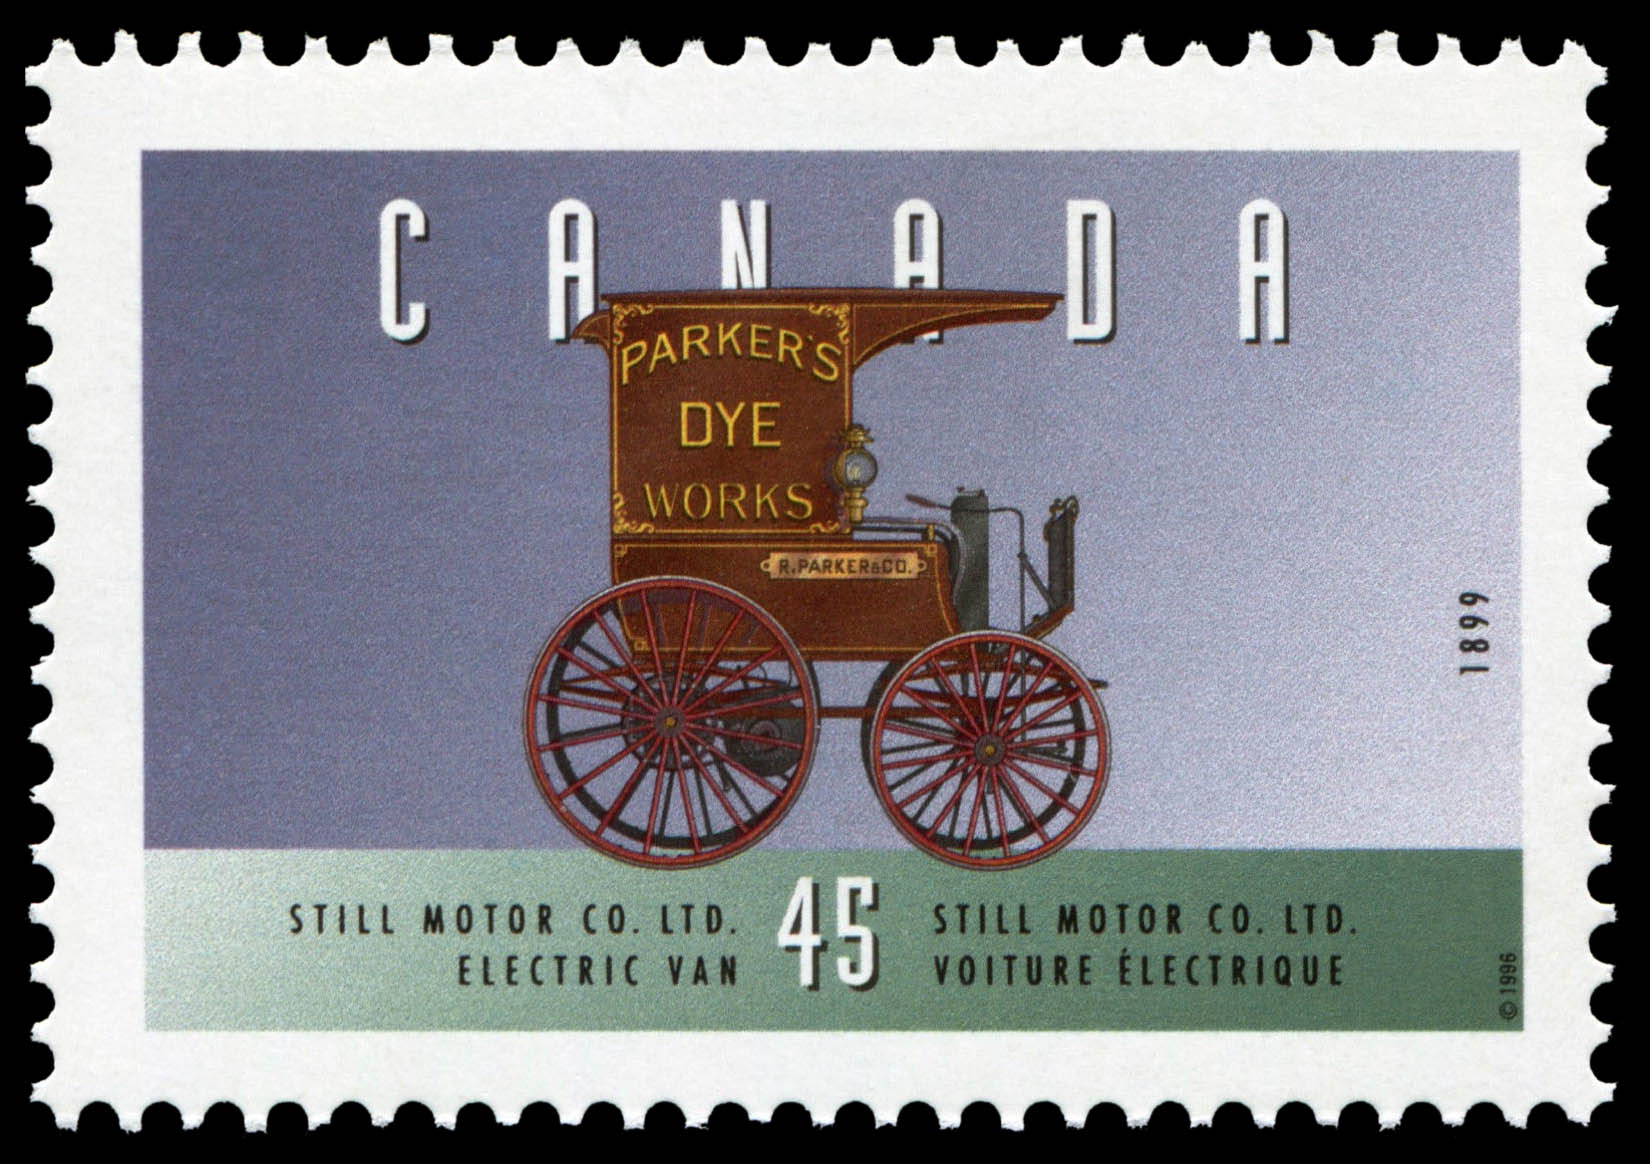 Still Motor Co. Ltd., 1899, Electric Van Canada Postage Stamp | Historic Land Vehicles, Industrial and Commercial Vehicles